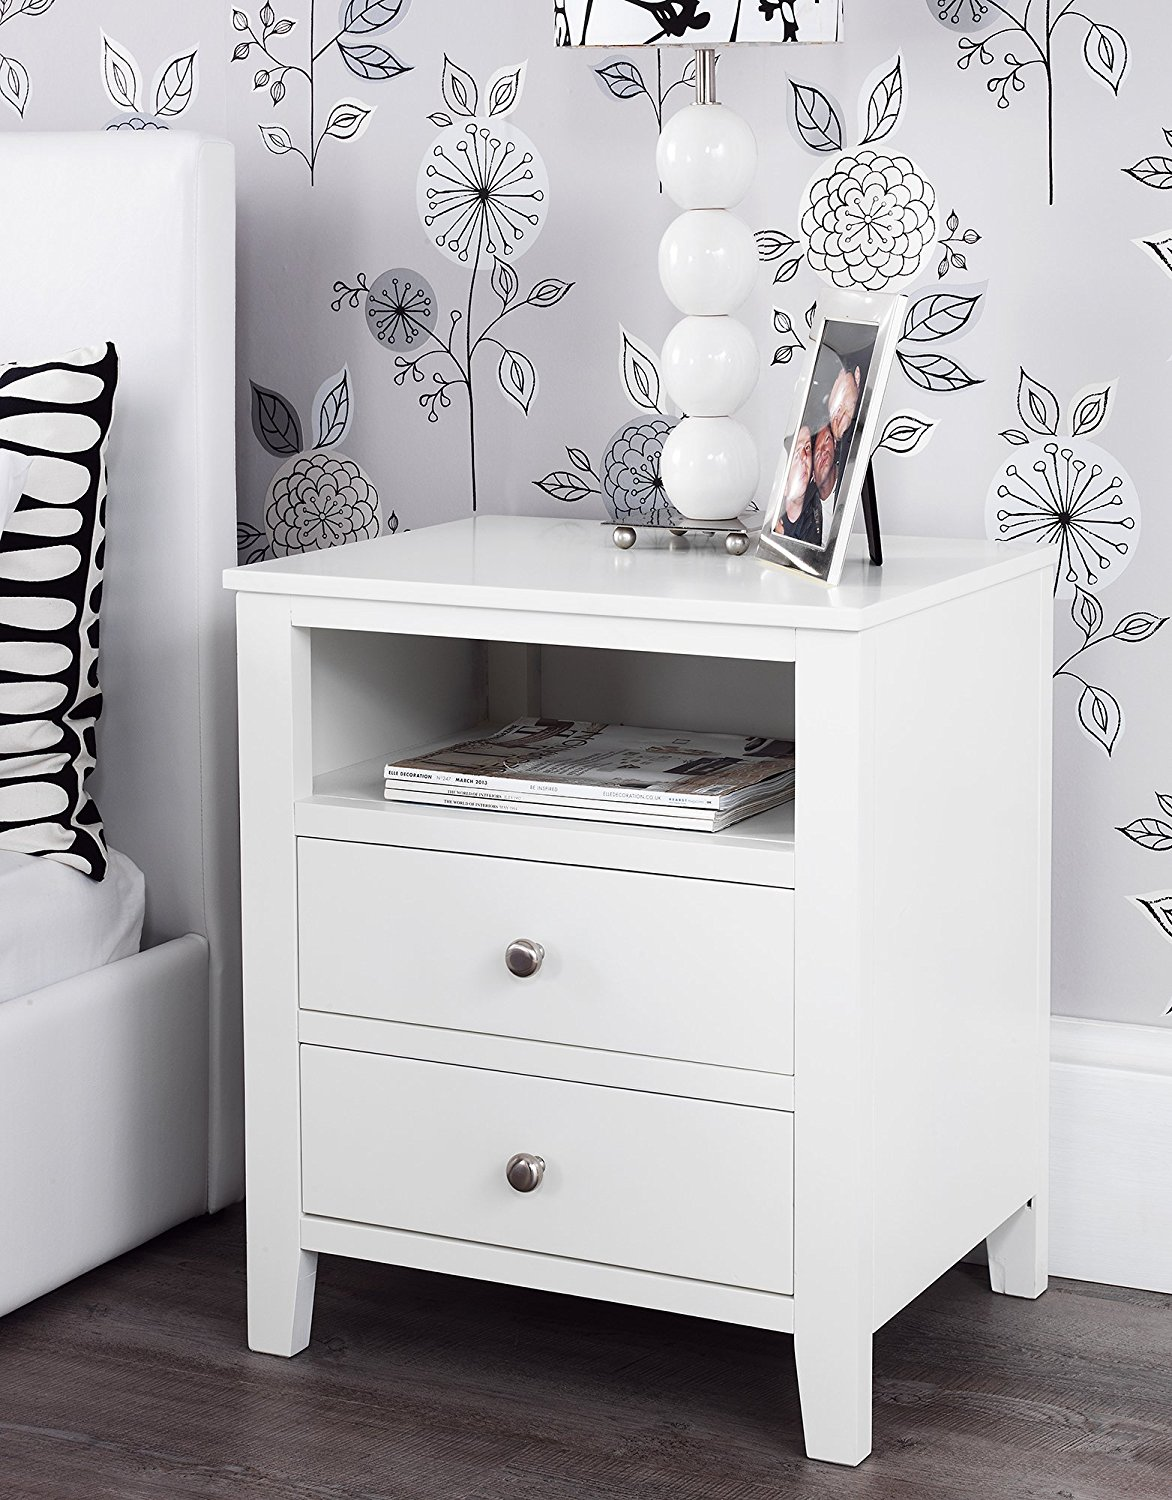 How to decorate white bedside table with drawers